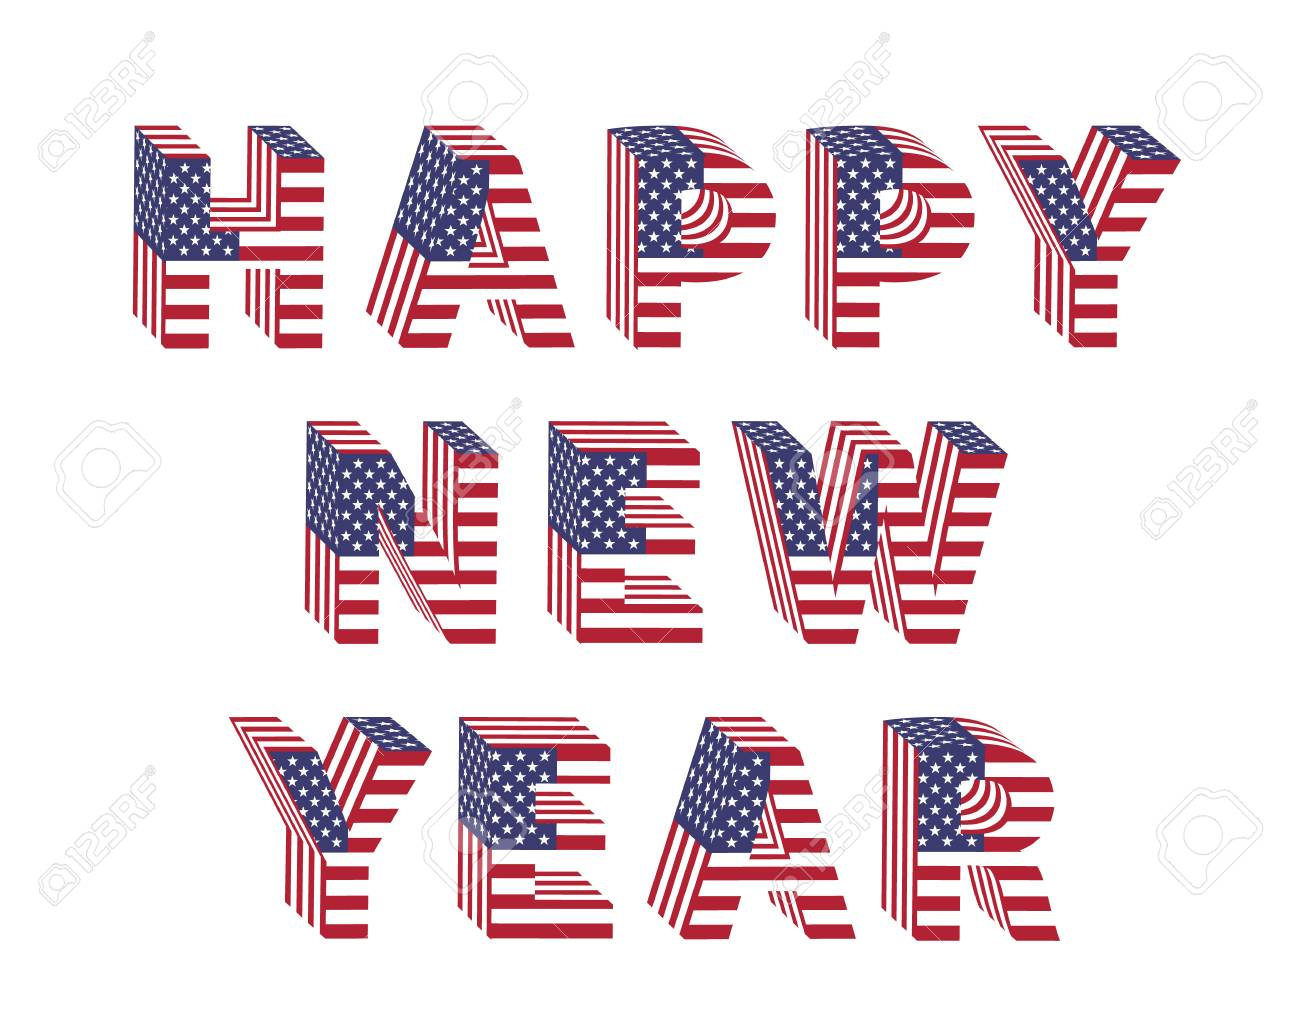 Happy New Year text in 3d letters with American flag designs. Stock Vector - 90600064